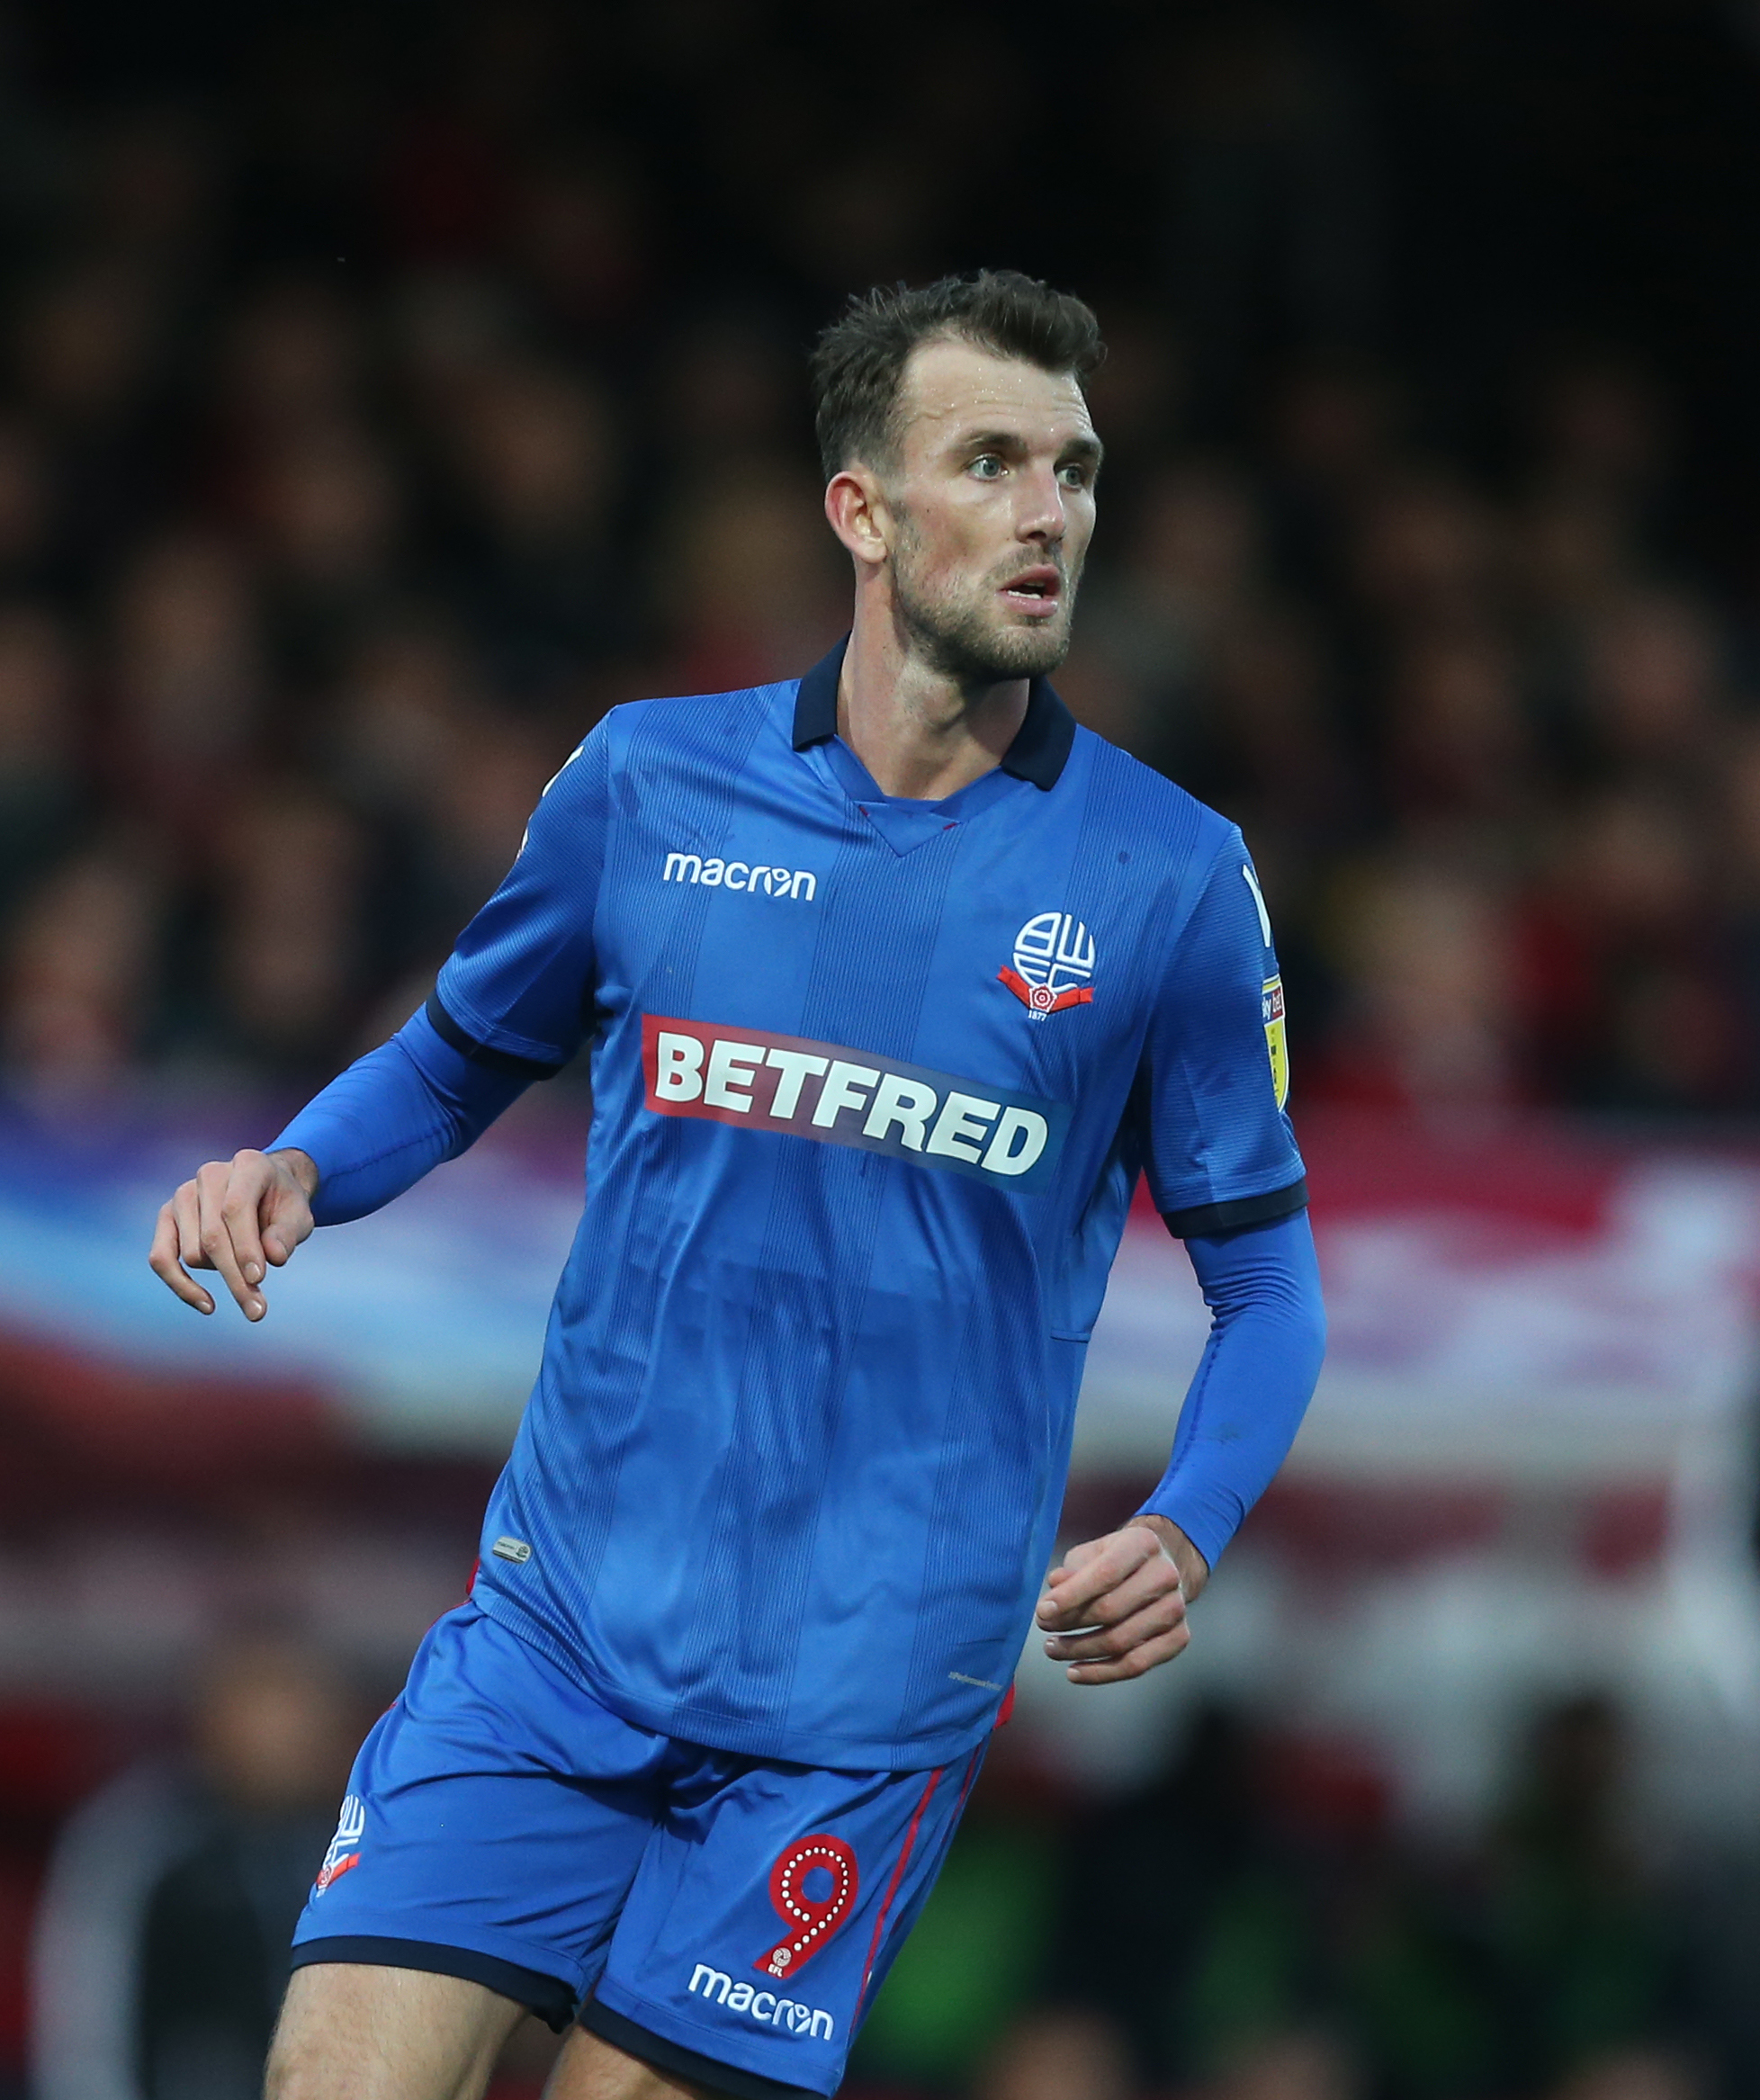 Bolton Wanderers striker Christian Doidge was unable to play in Saturday's FA Cup game against Walsall